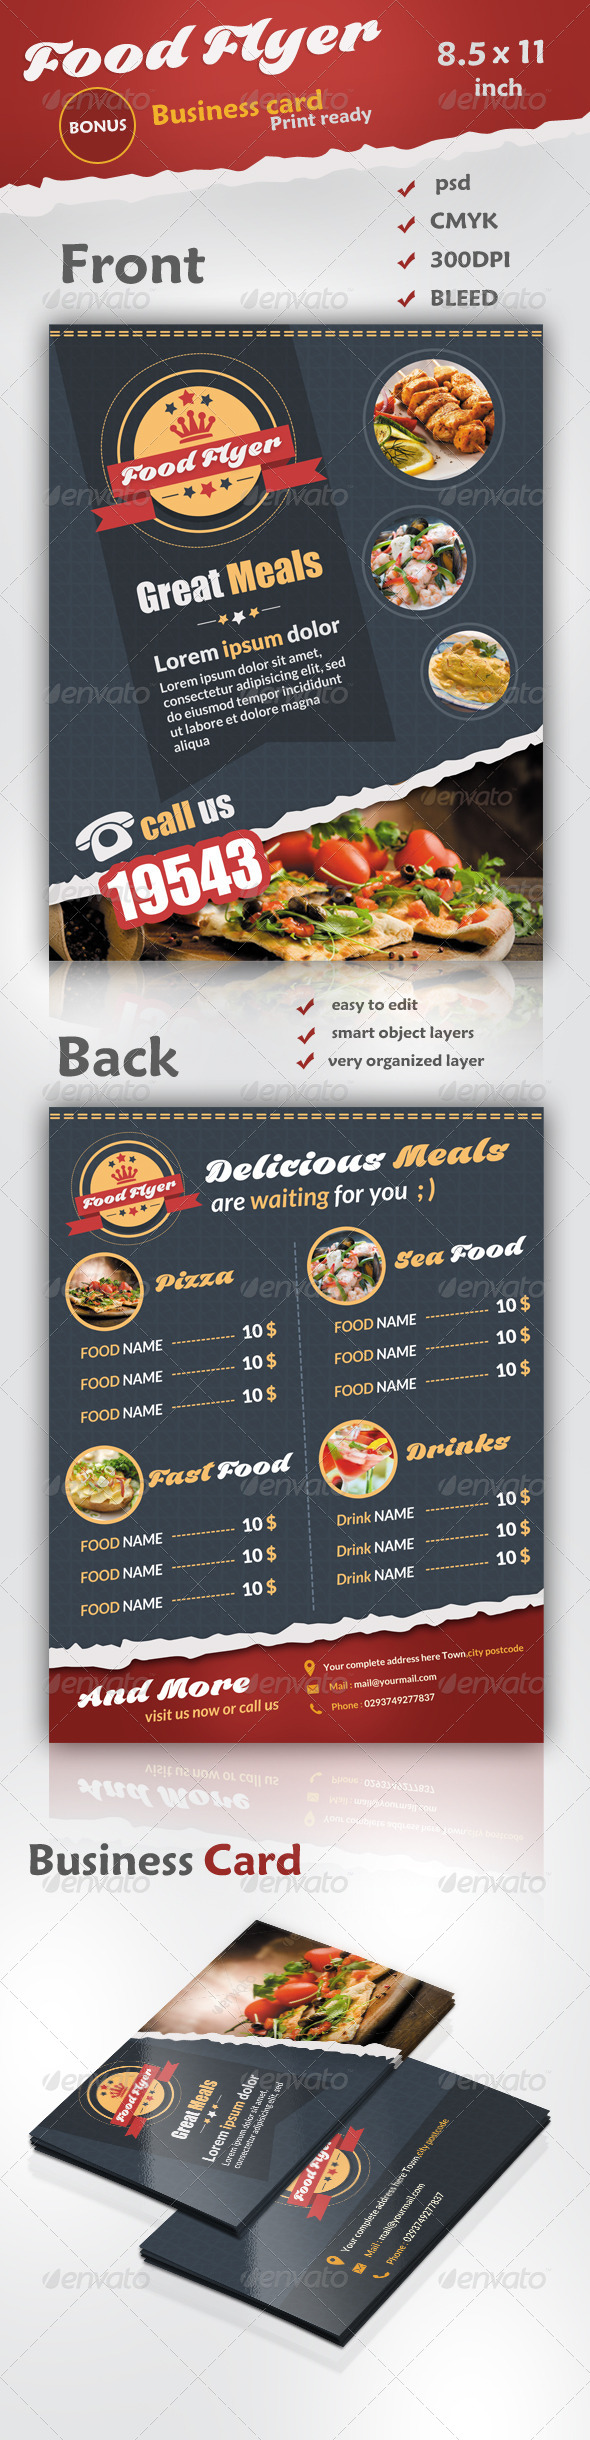 Food Flyer - Business Card - Restaurant Flyers